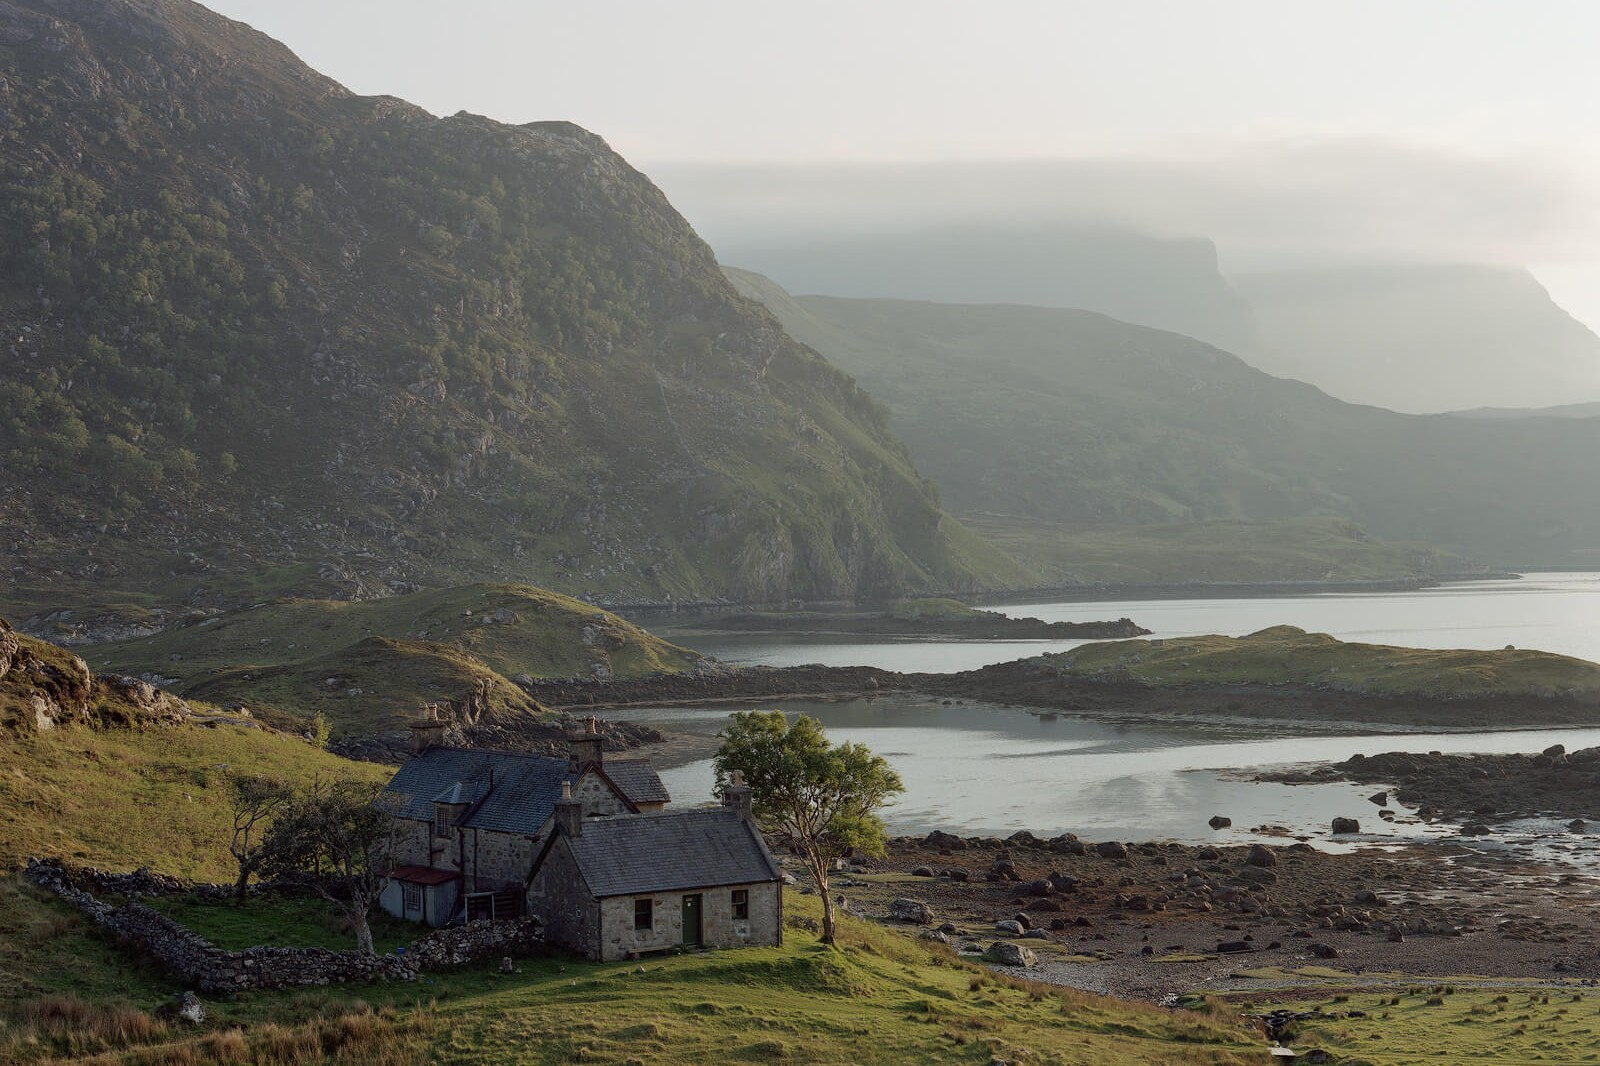 Nicholas White, Glencoul, Northern Highlands, Scotland, The South West Collective of photography Ltd